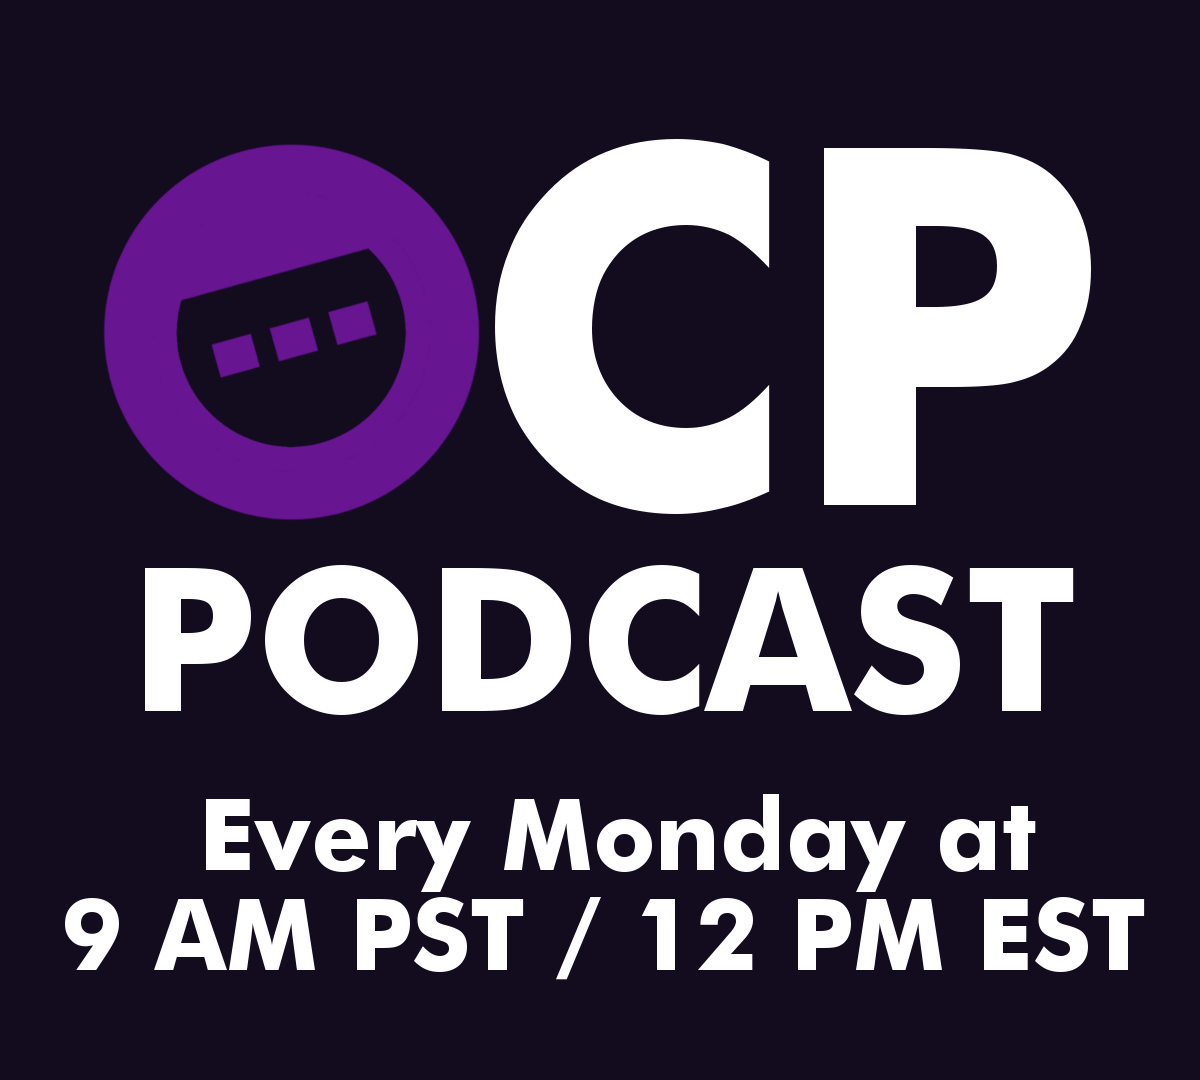 One Controller Port Podcast Every Monday